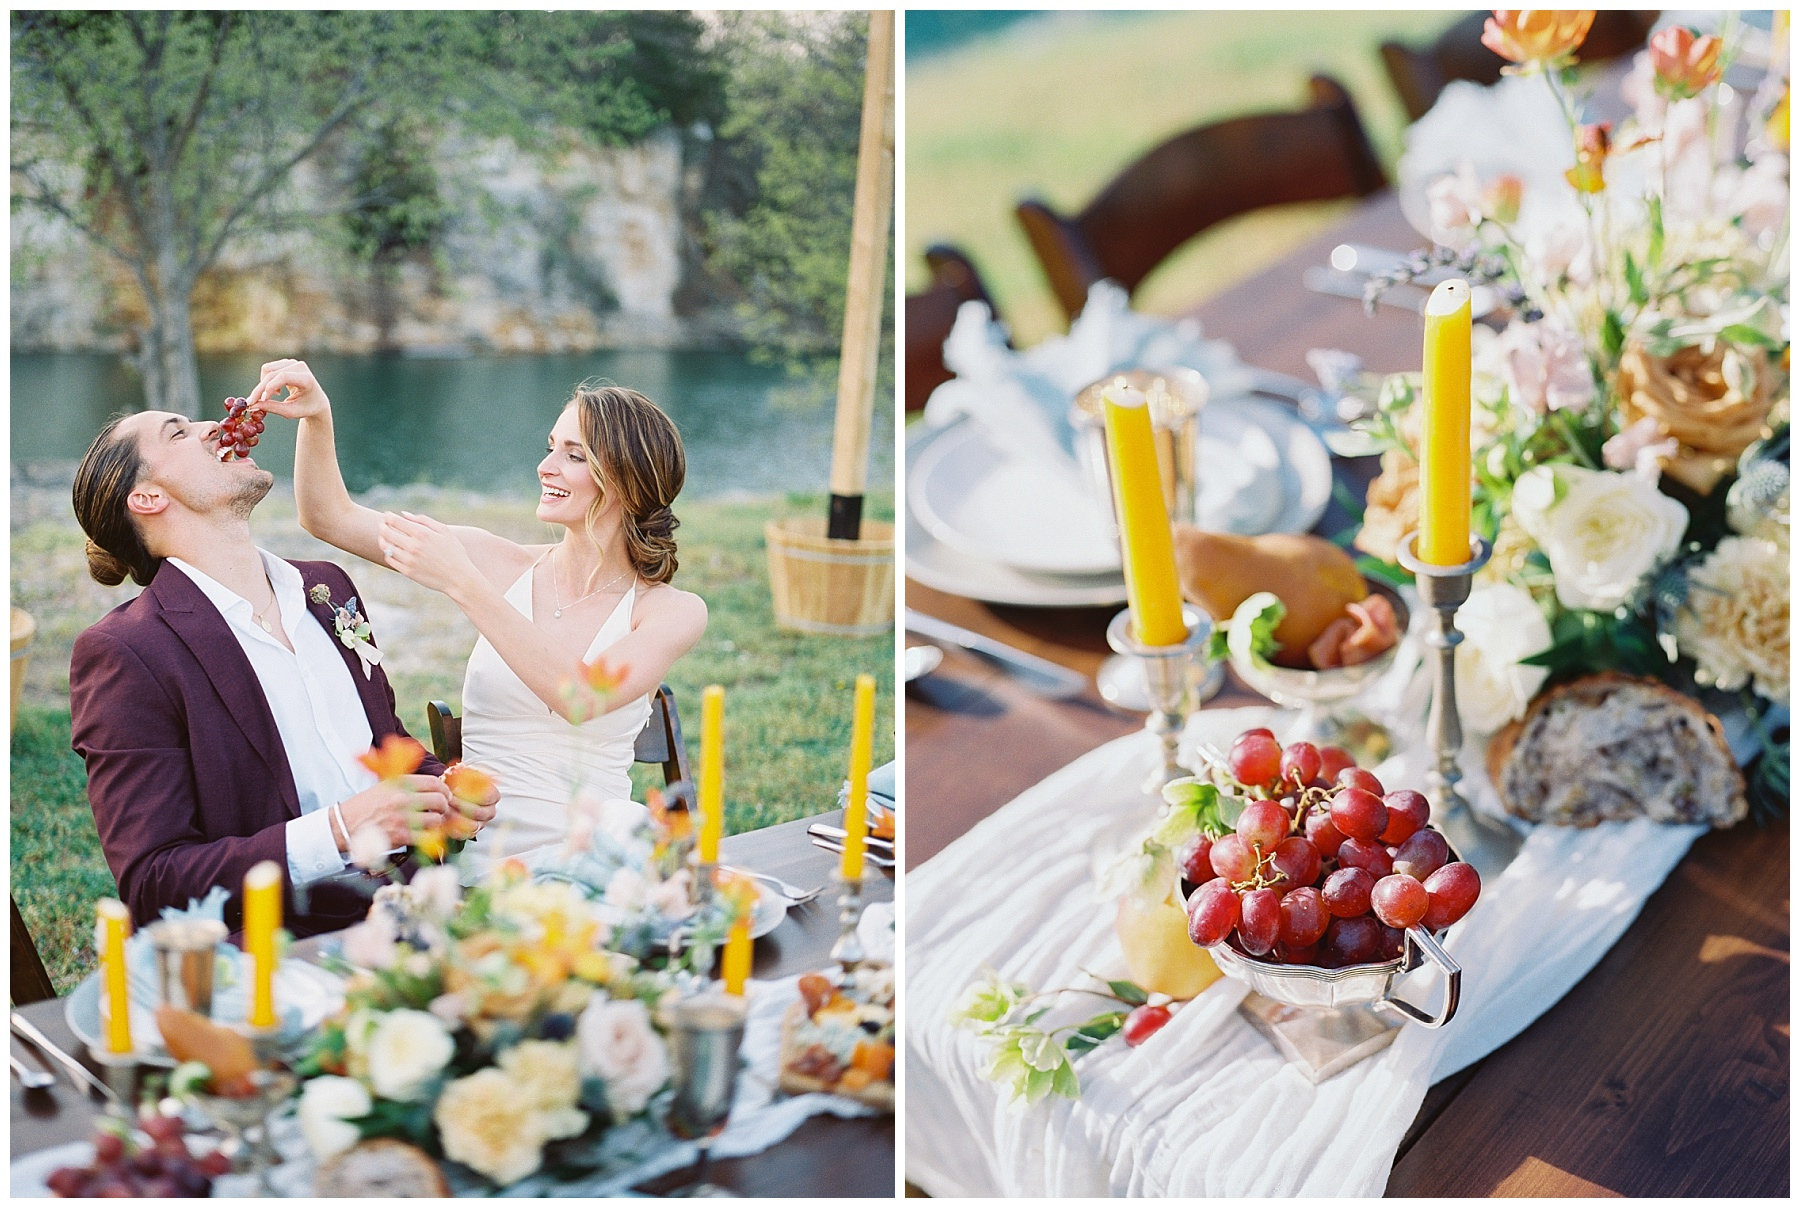 Intimate Spanish and French Inspired Destination Wedding with Lakeside Dinner Party at Dusk at Wildcliff by Kelsi Kliethermes Photography Best Missouri and Maui Wedding Photographer_0042.jpg